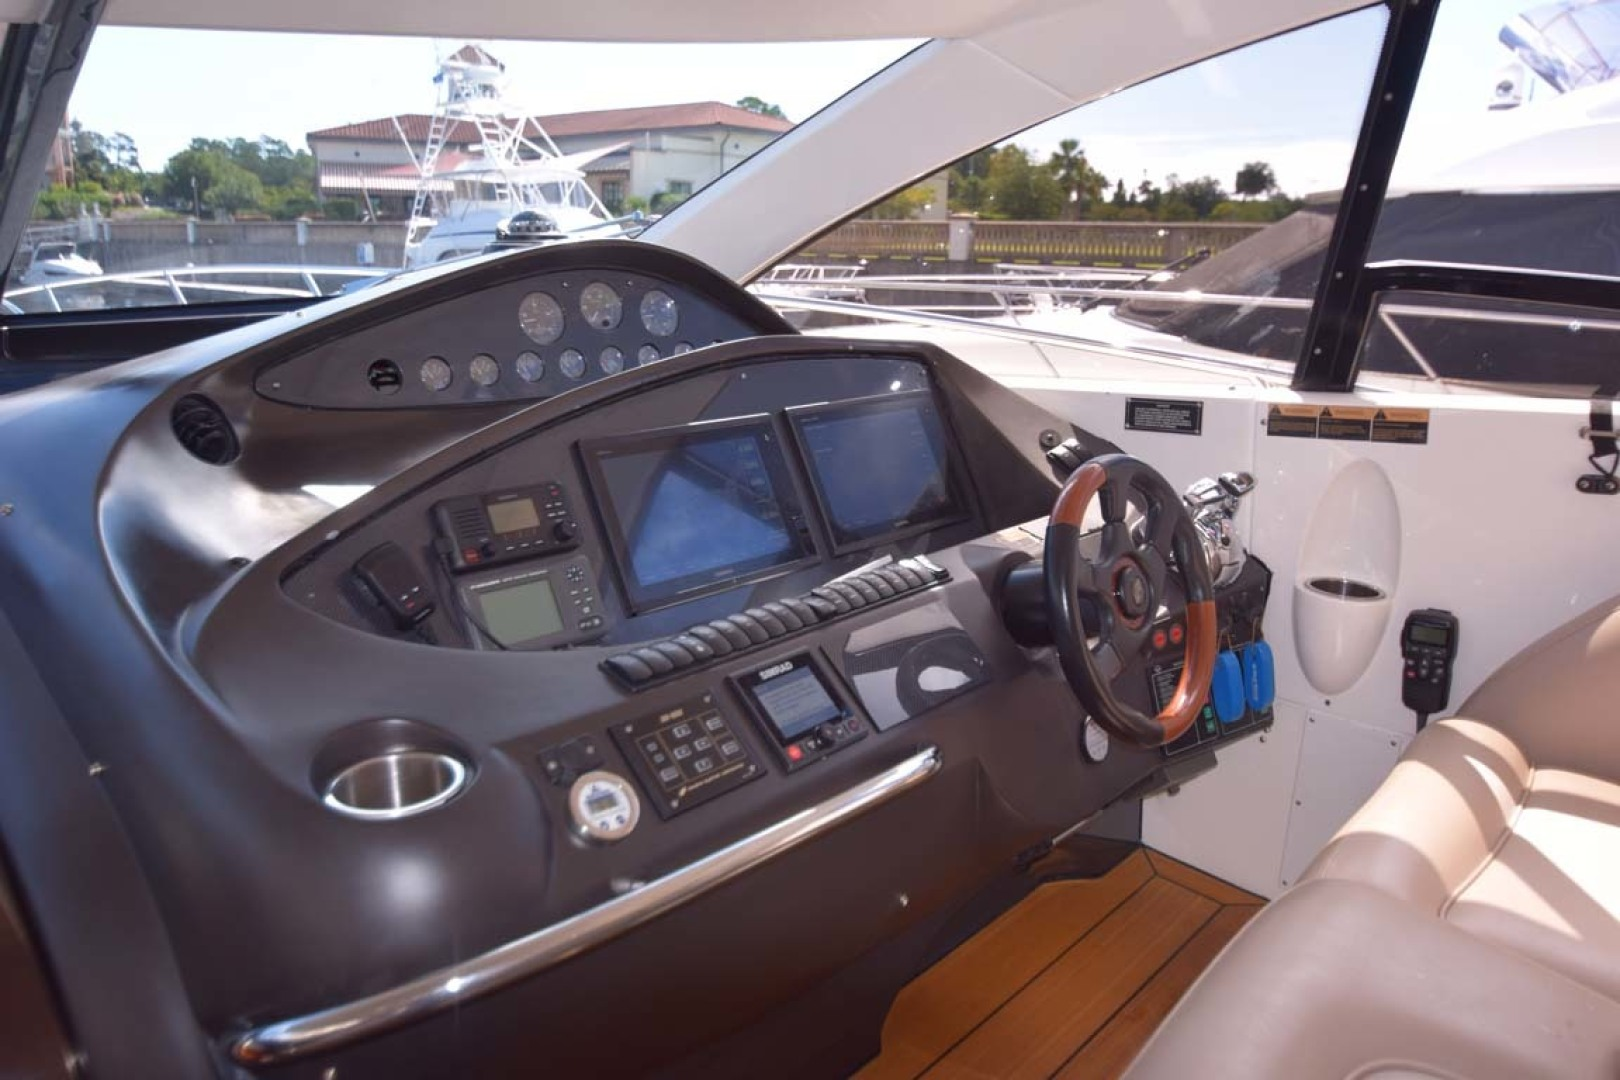 Sunseeker-Predator 2003-Low Profile PALM BEACH-Florida-United States-Helm Instrumentation-1576370 | Thumbnail